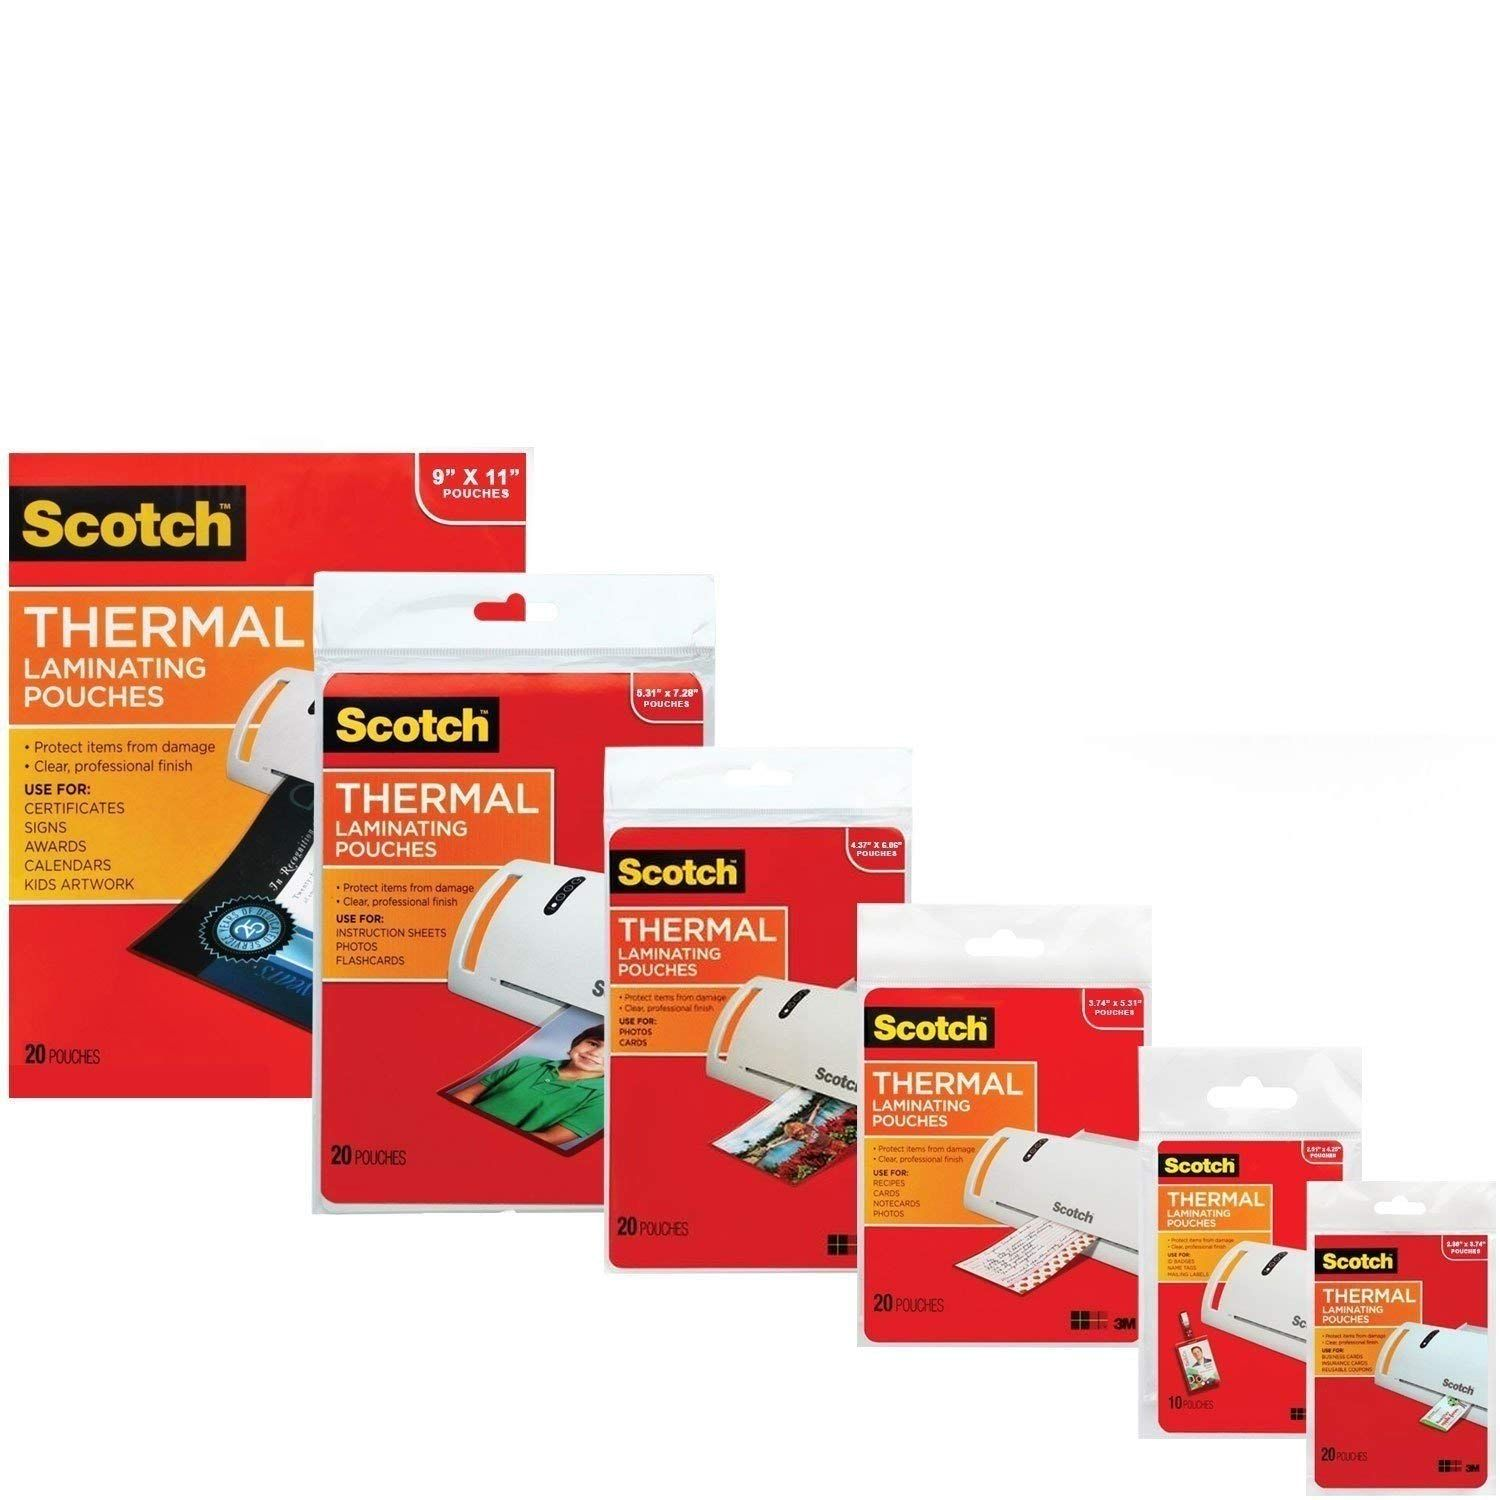 3m Laminating Pouch Kit With All Varieties Of Laminating Pouches Laminators Business Card Size Document Cameras